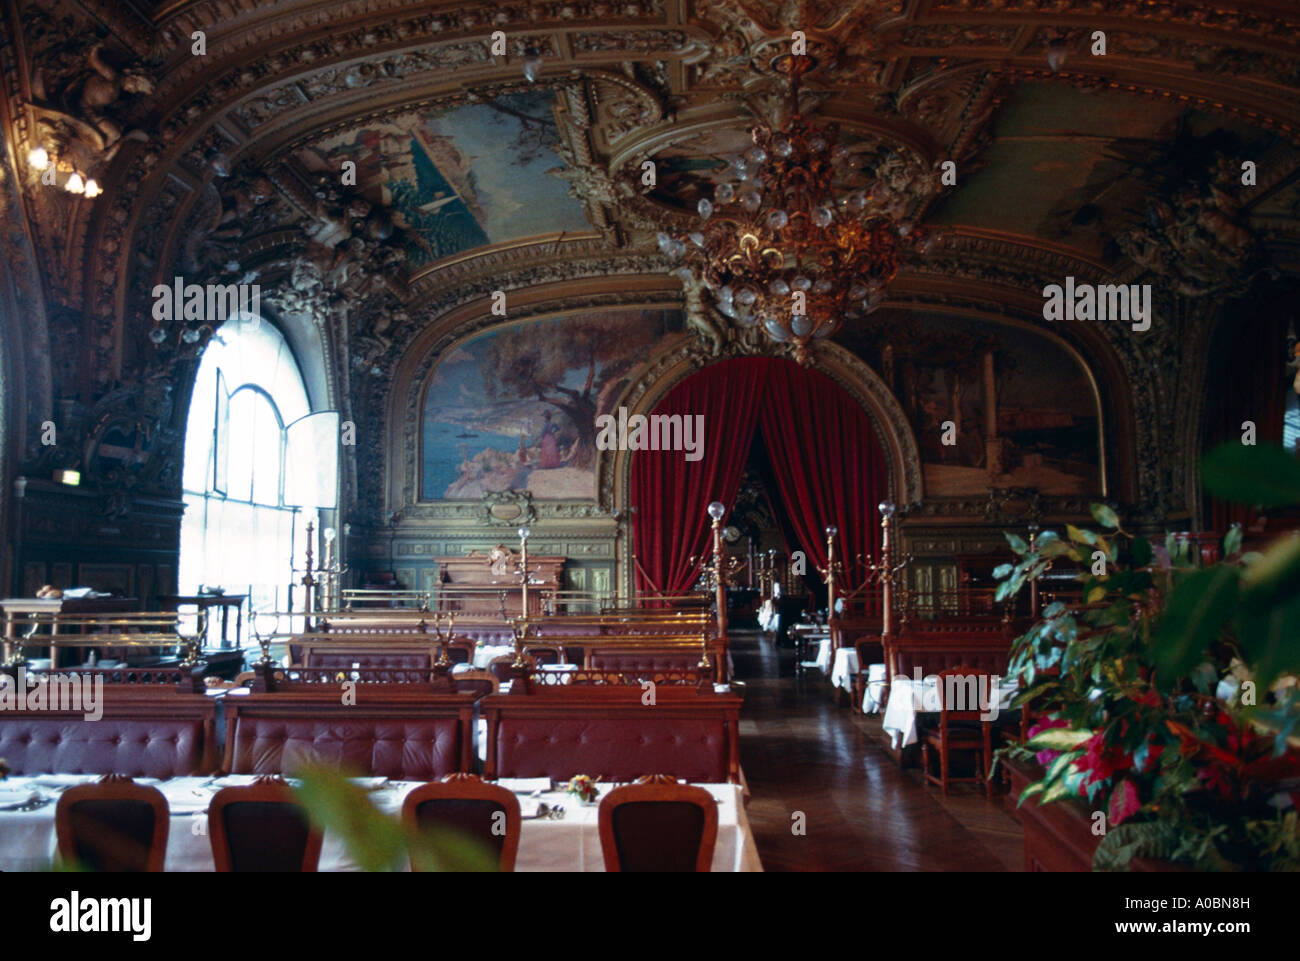 Restaurant Le Train Bleu Interieur Paris Stockbild